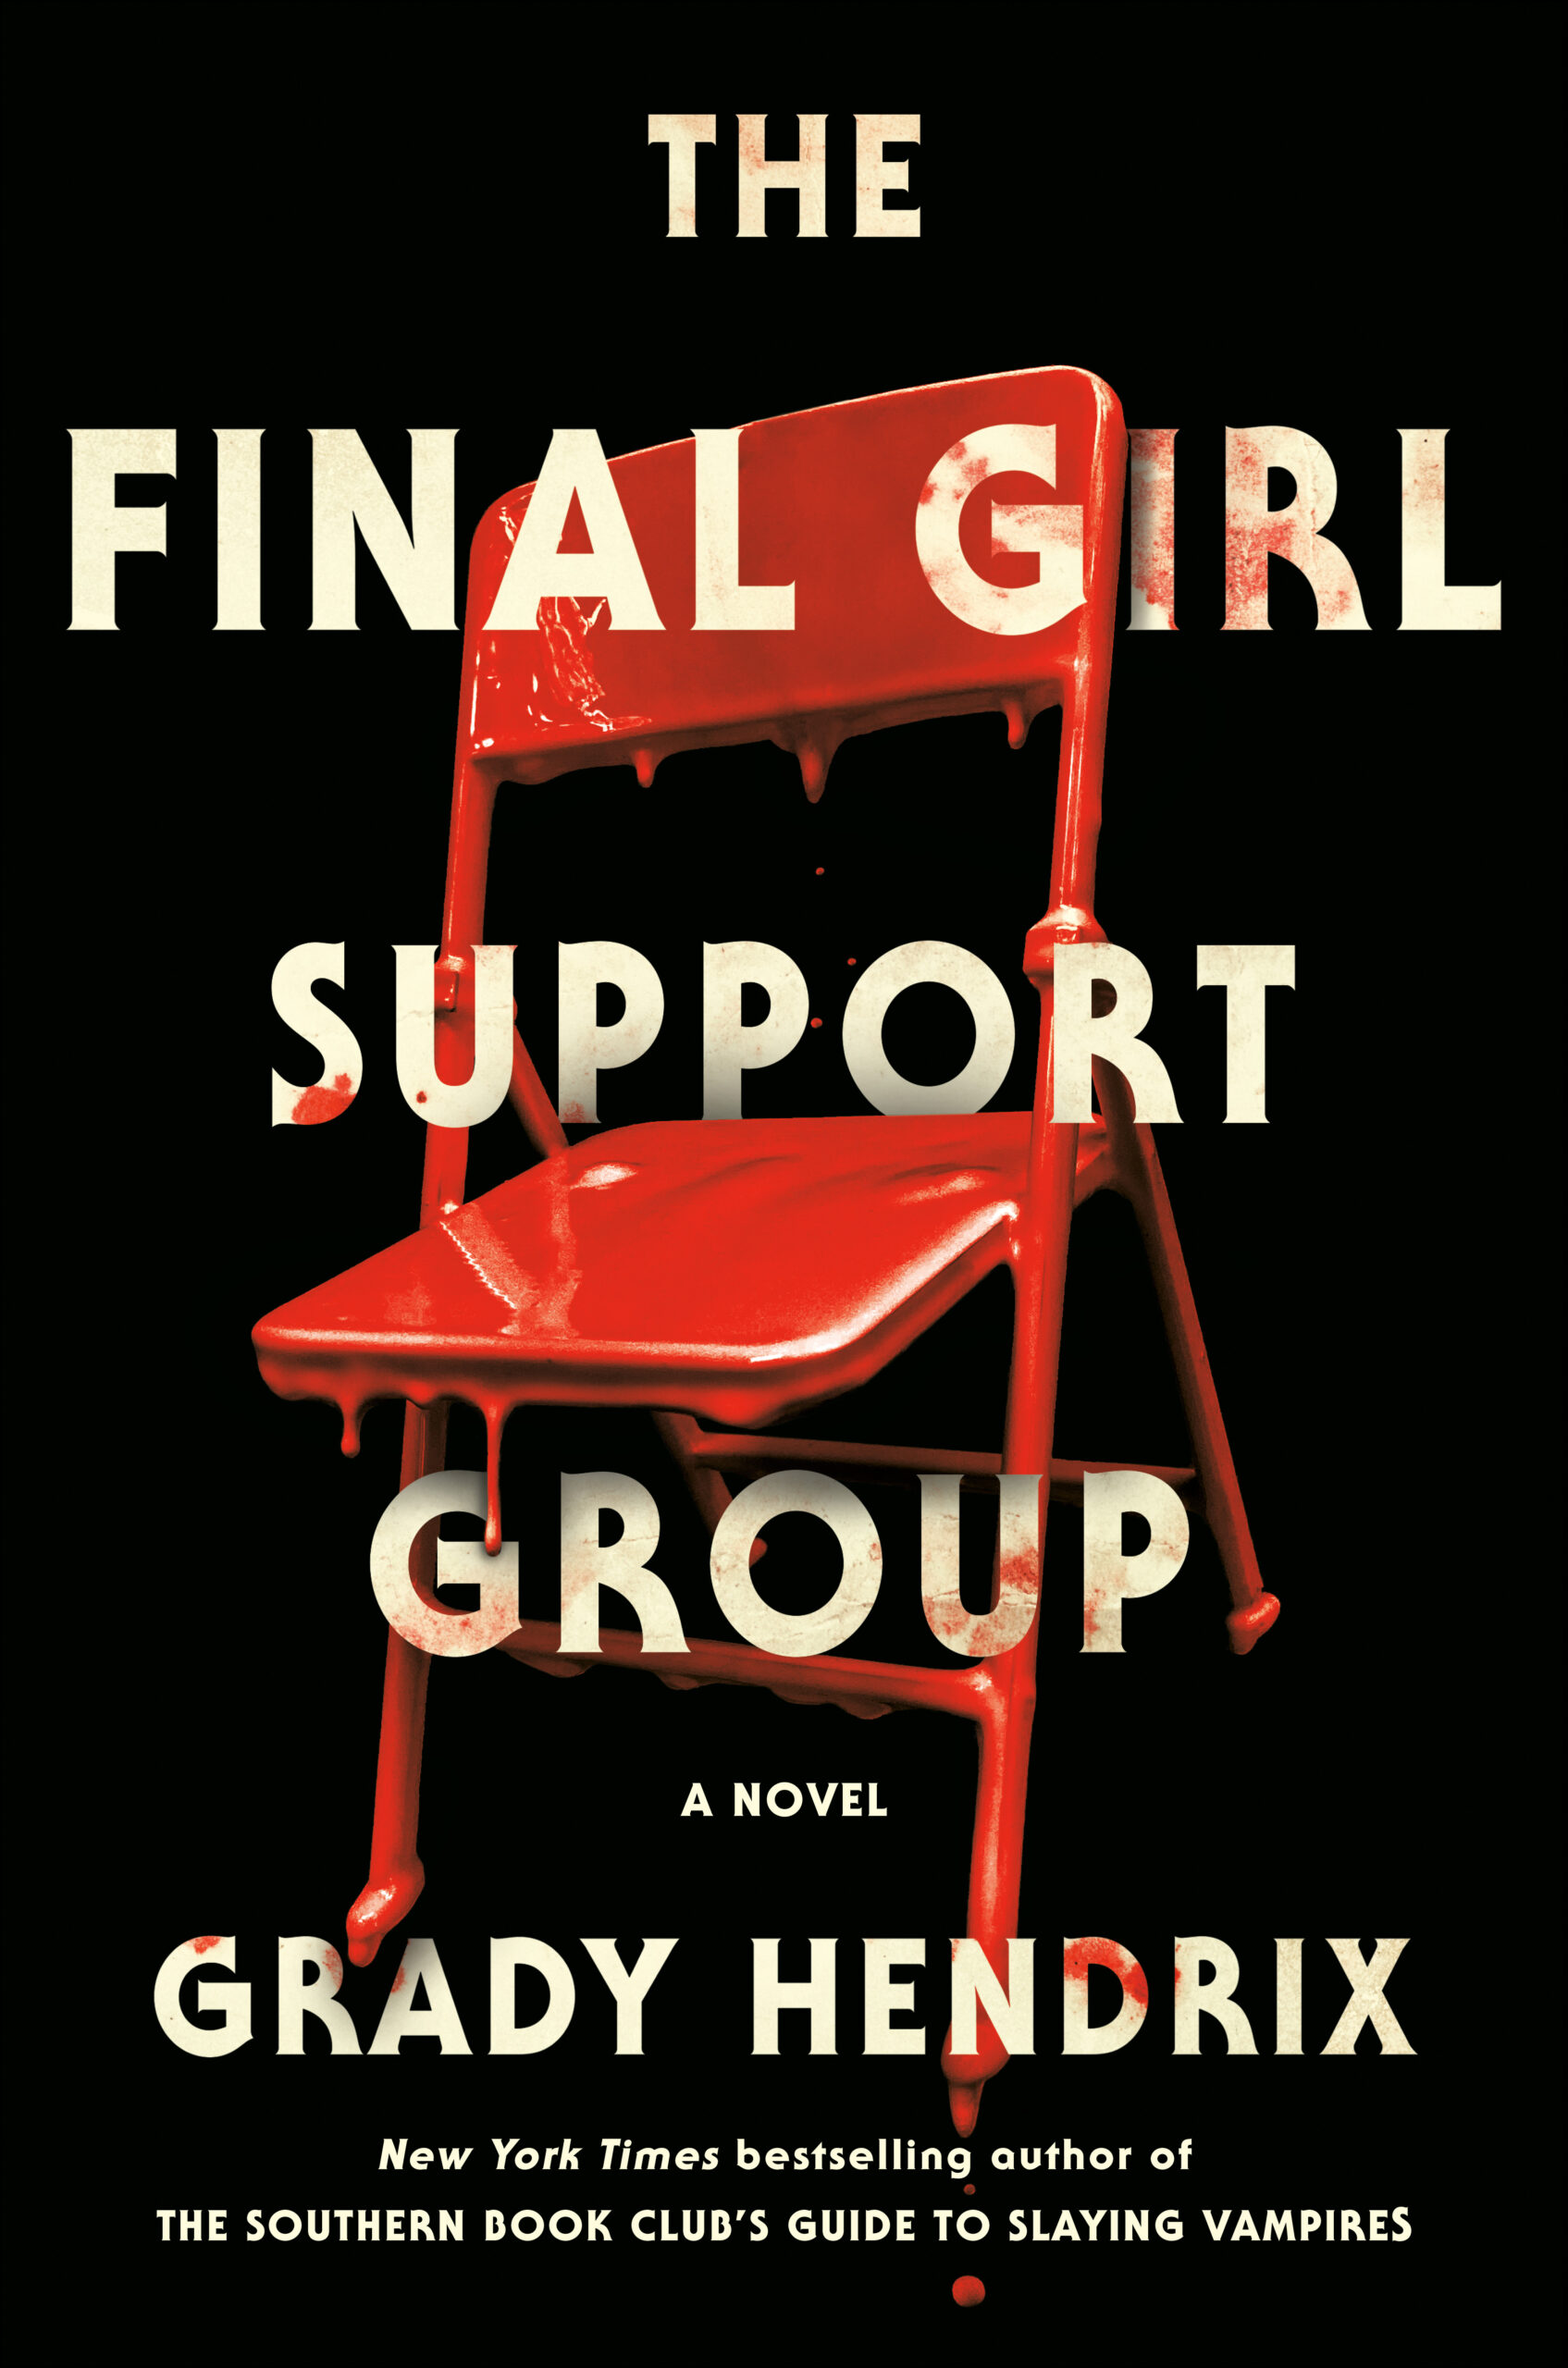 Book Launch: The Final Girl Support Group by Grady Hendrix